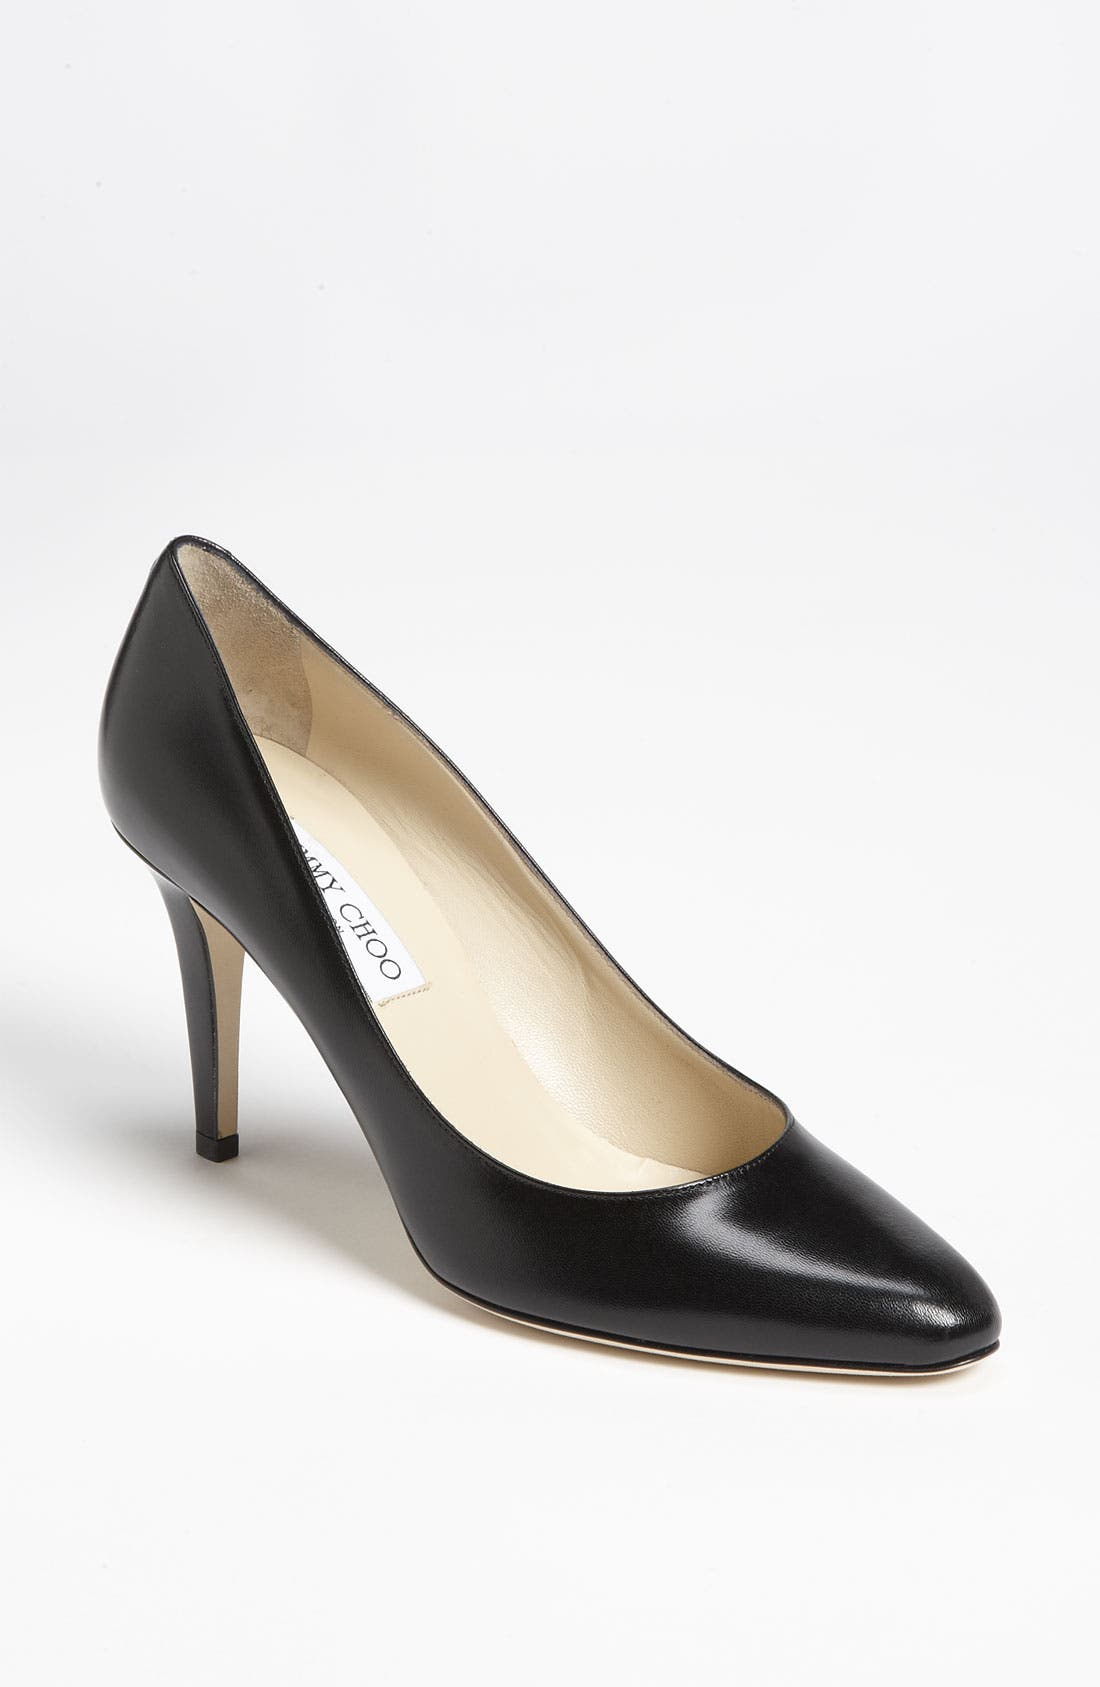 Alternate Image 1 Selected - Jimmy Choo 'Victory' Pump